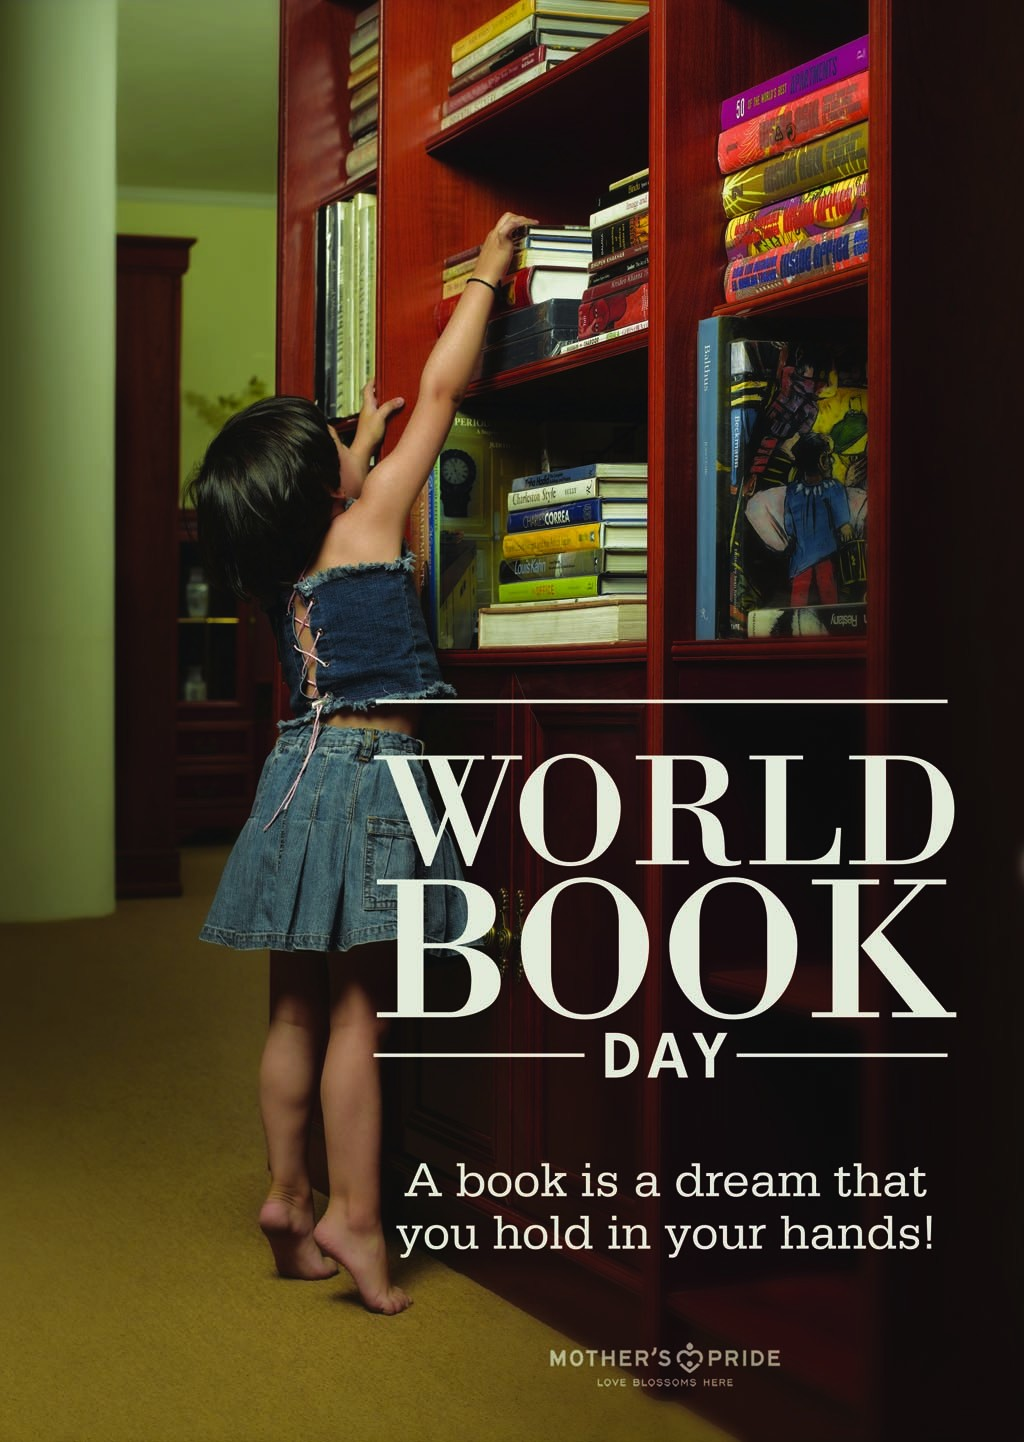 Word Book Day May